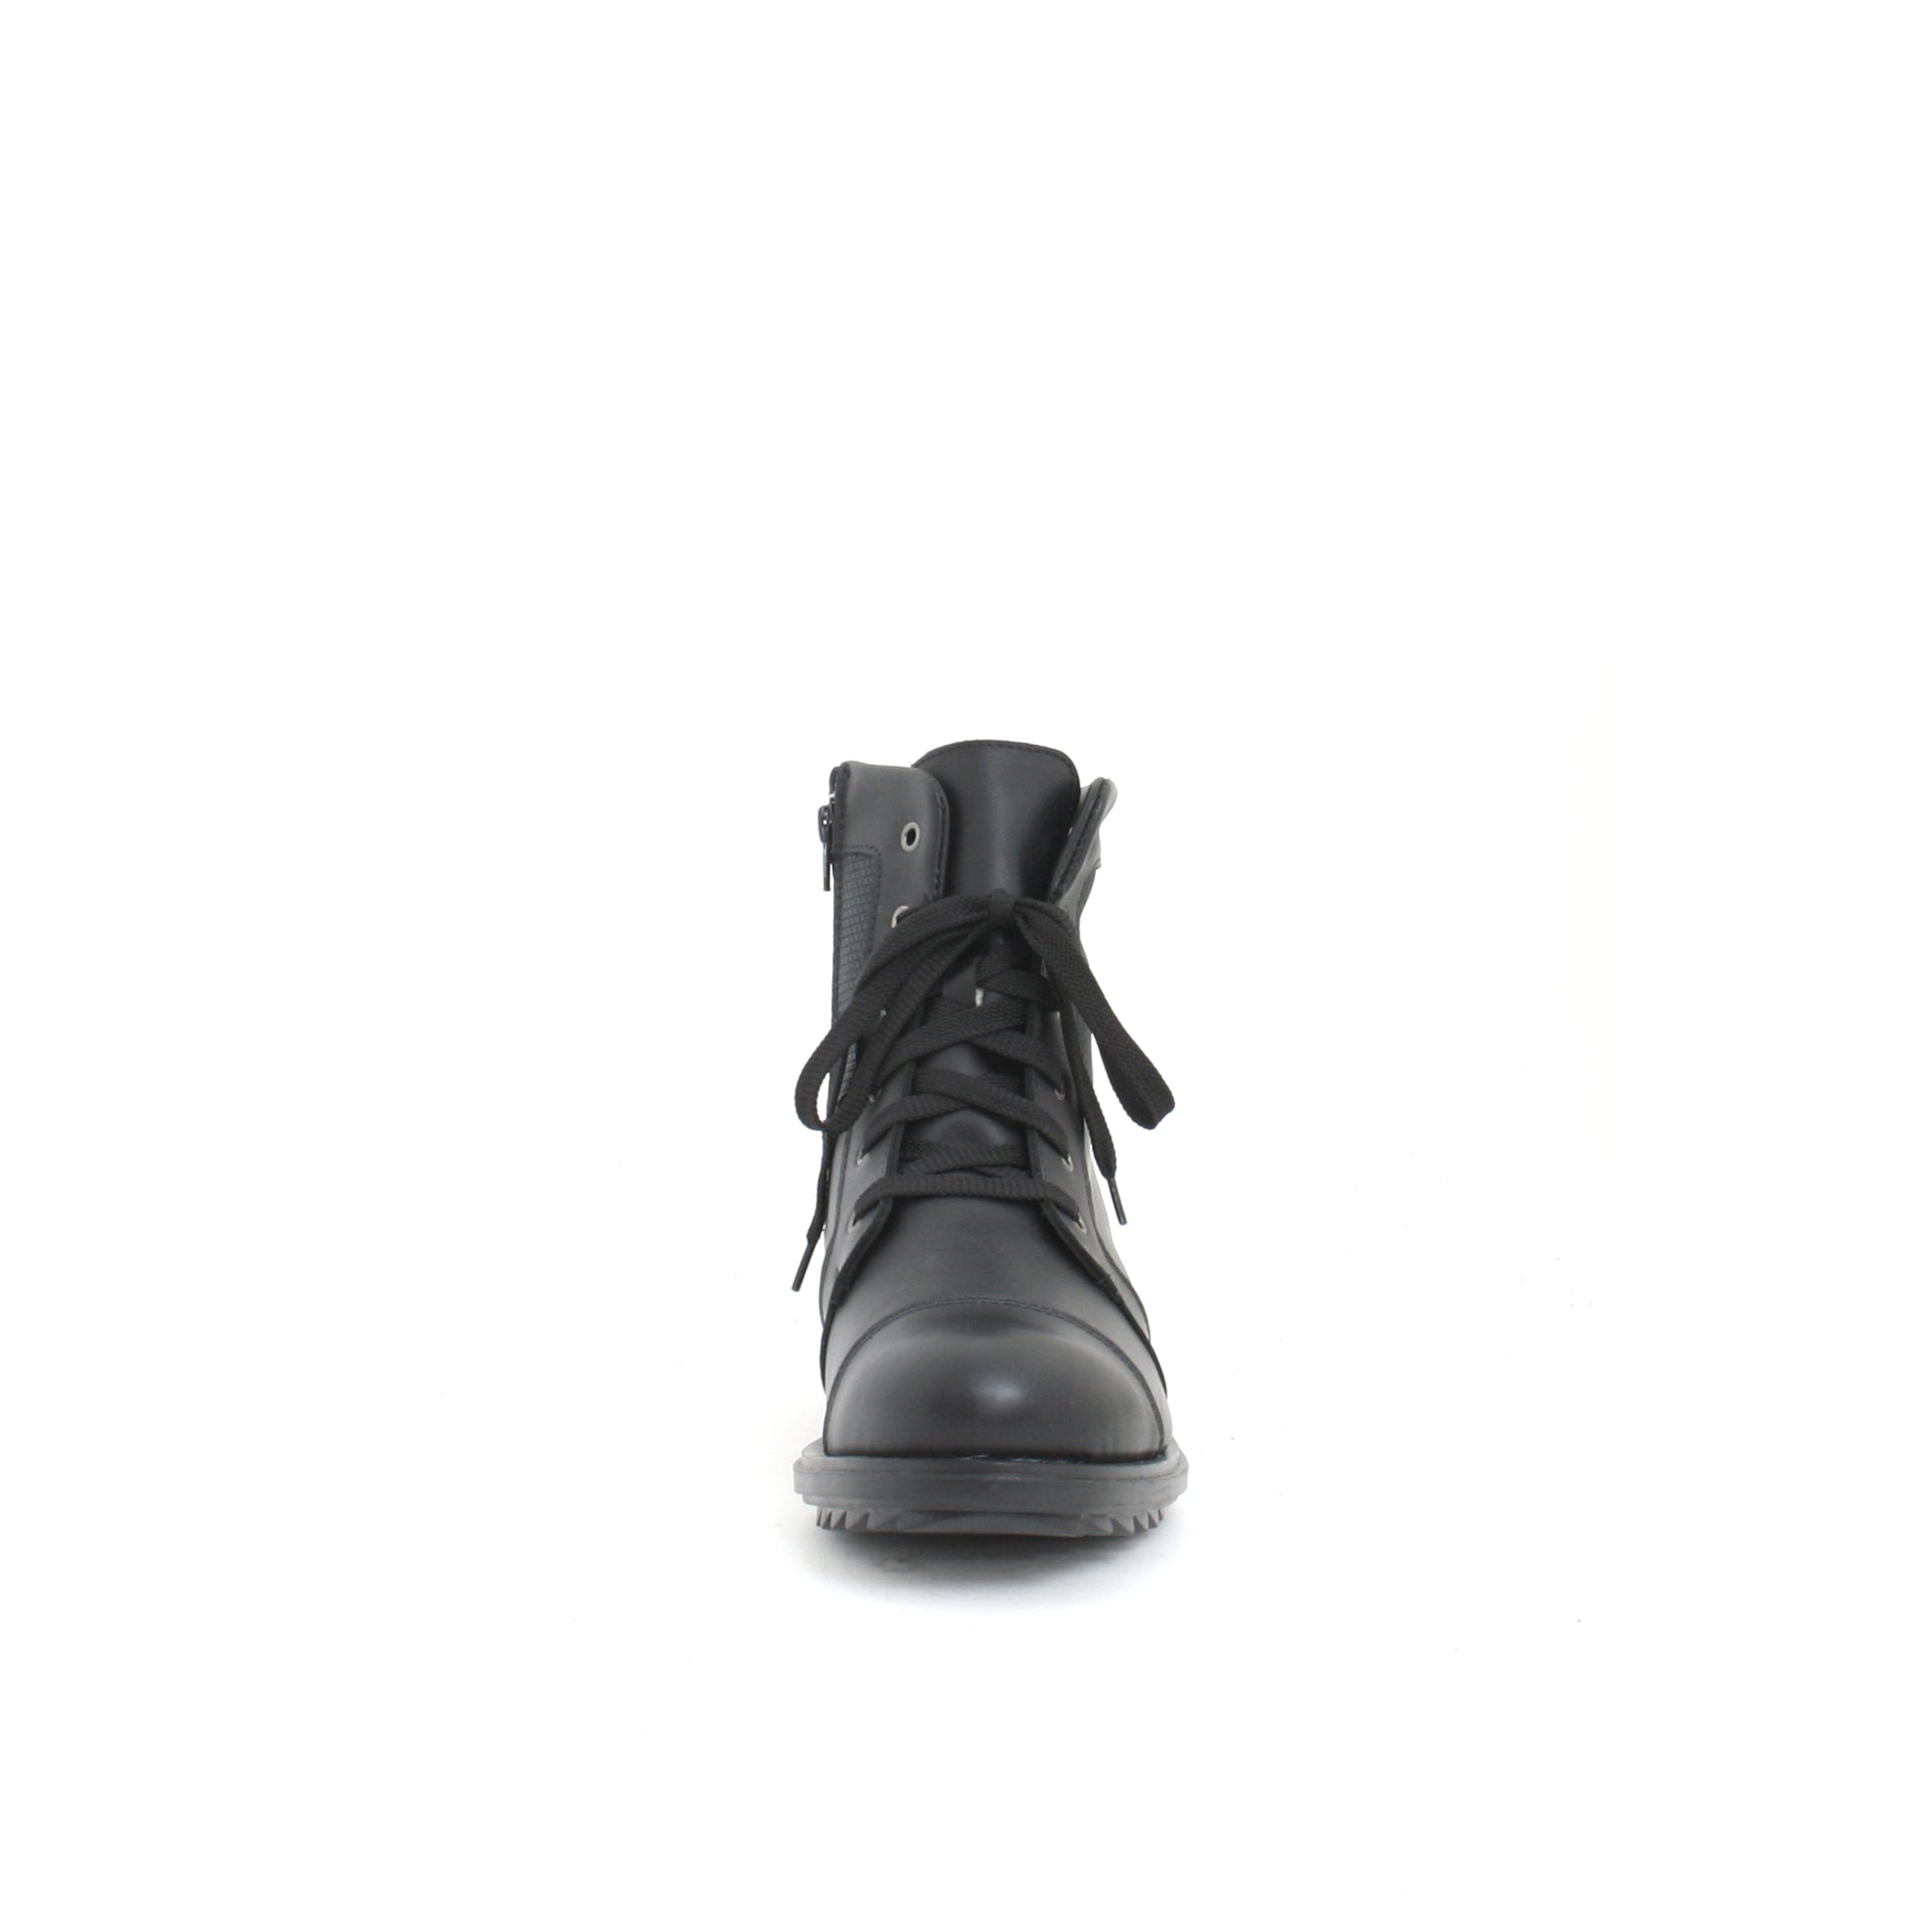 Martino- Matt Black leather boots for men